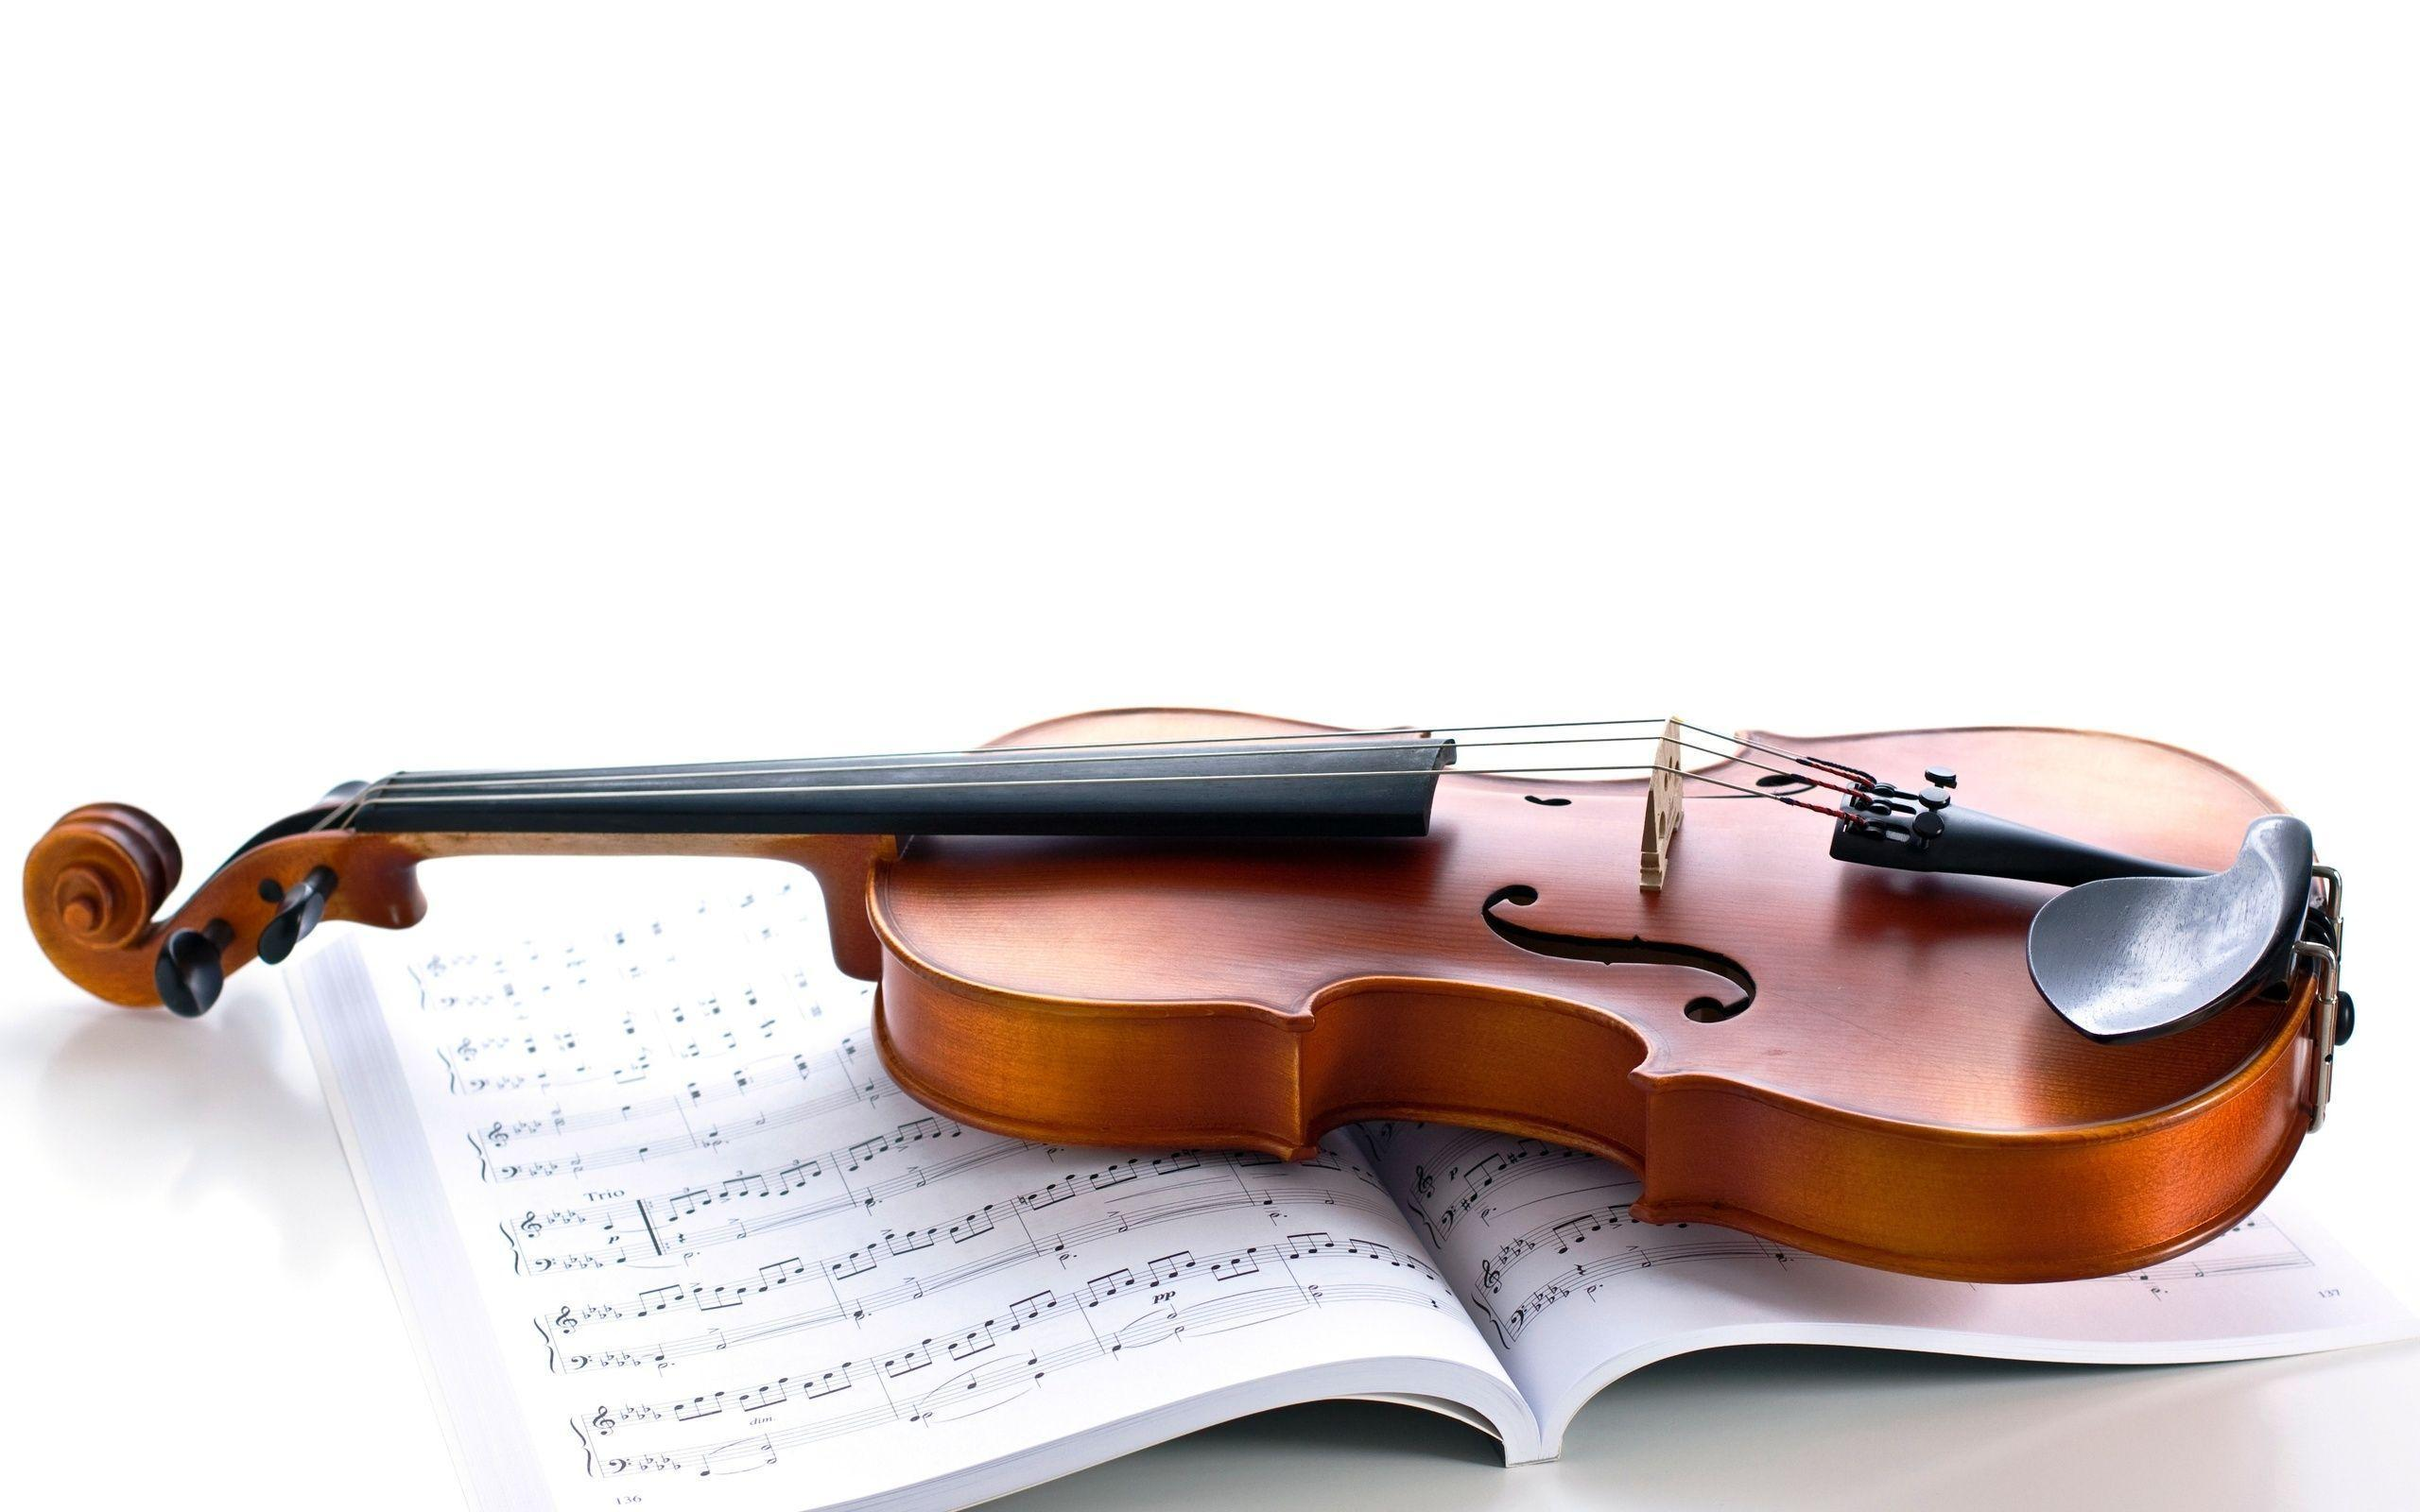 Violin Photo - Wallpaper, High Definition, High Quality, Widescreen